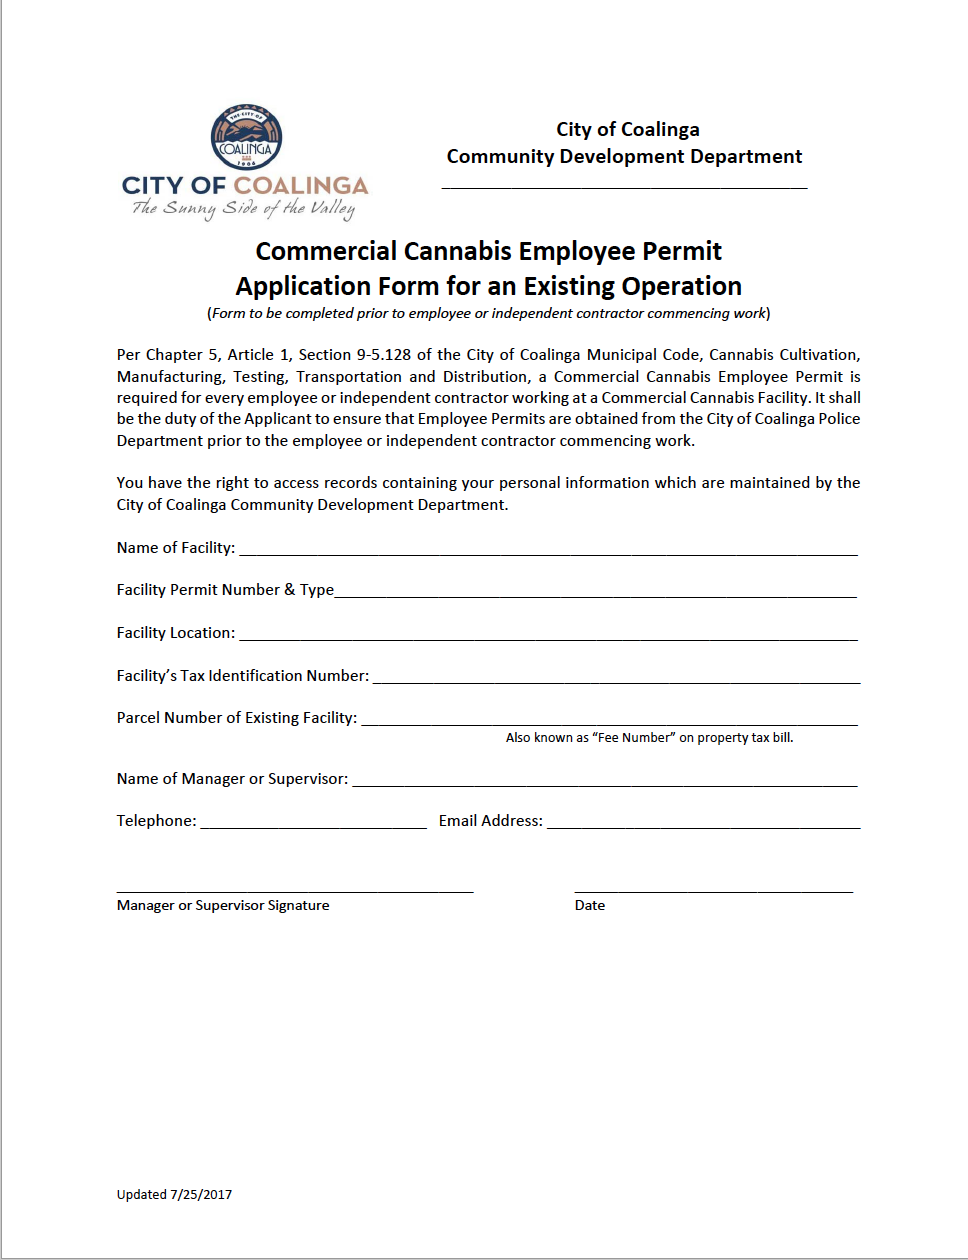 Permit Application - Existing.png